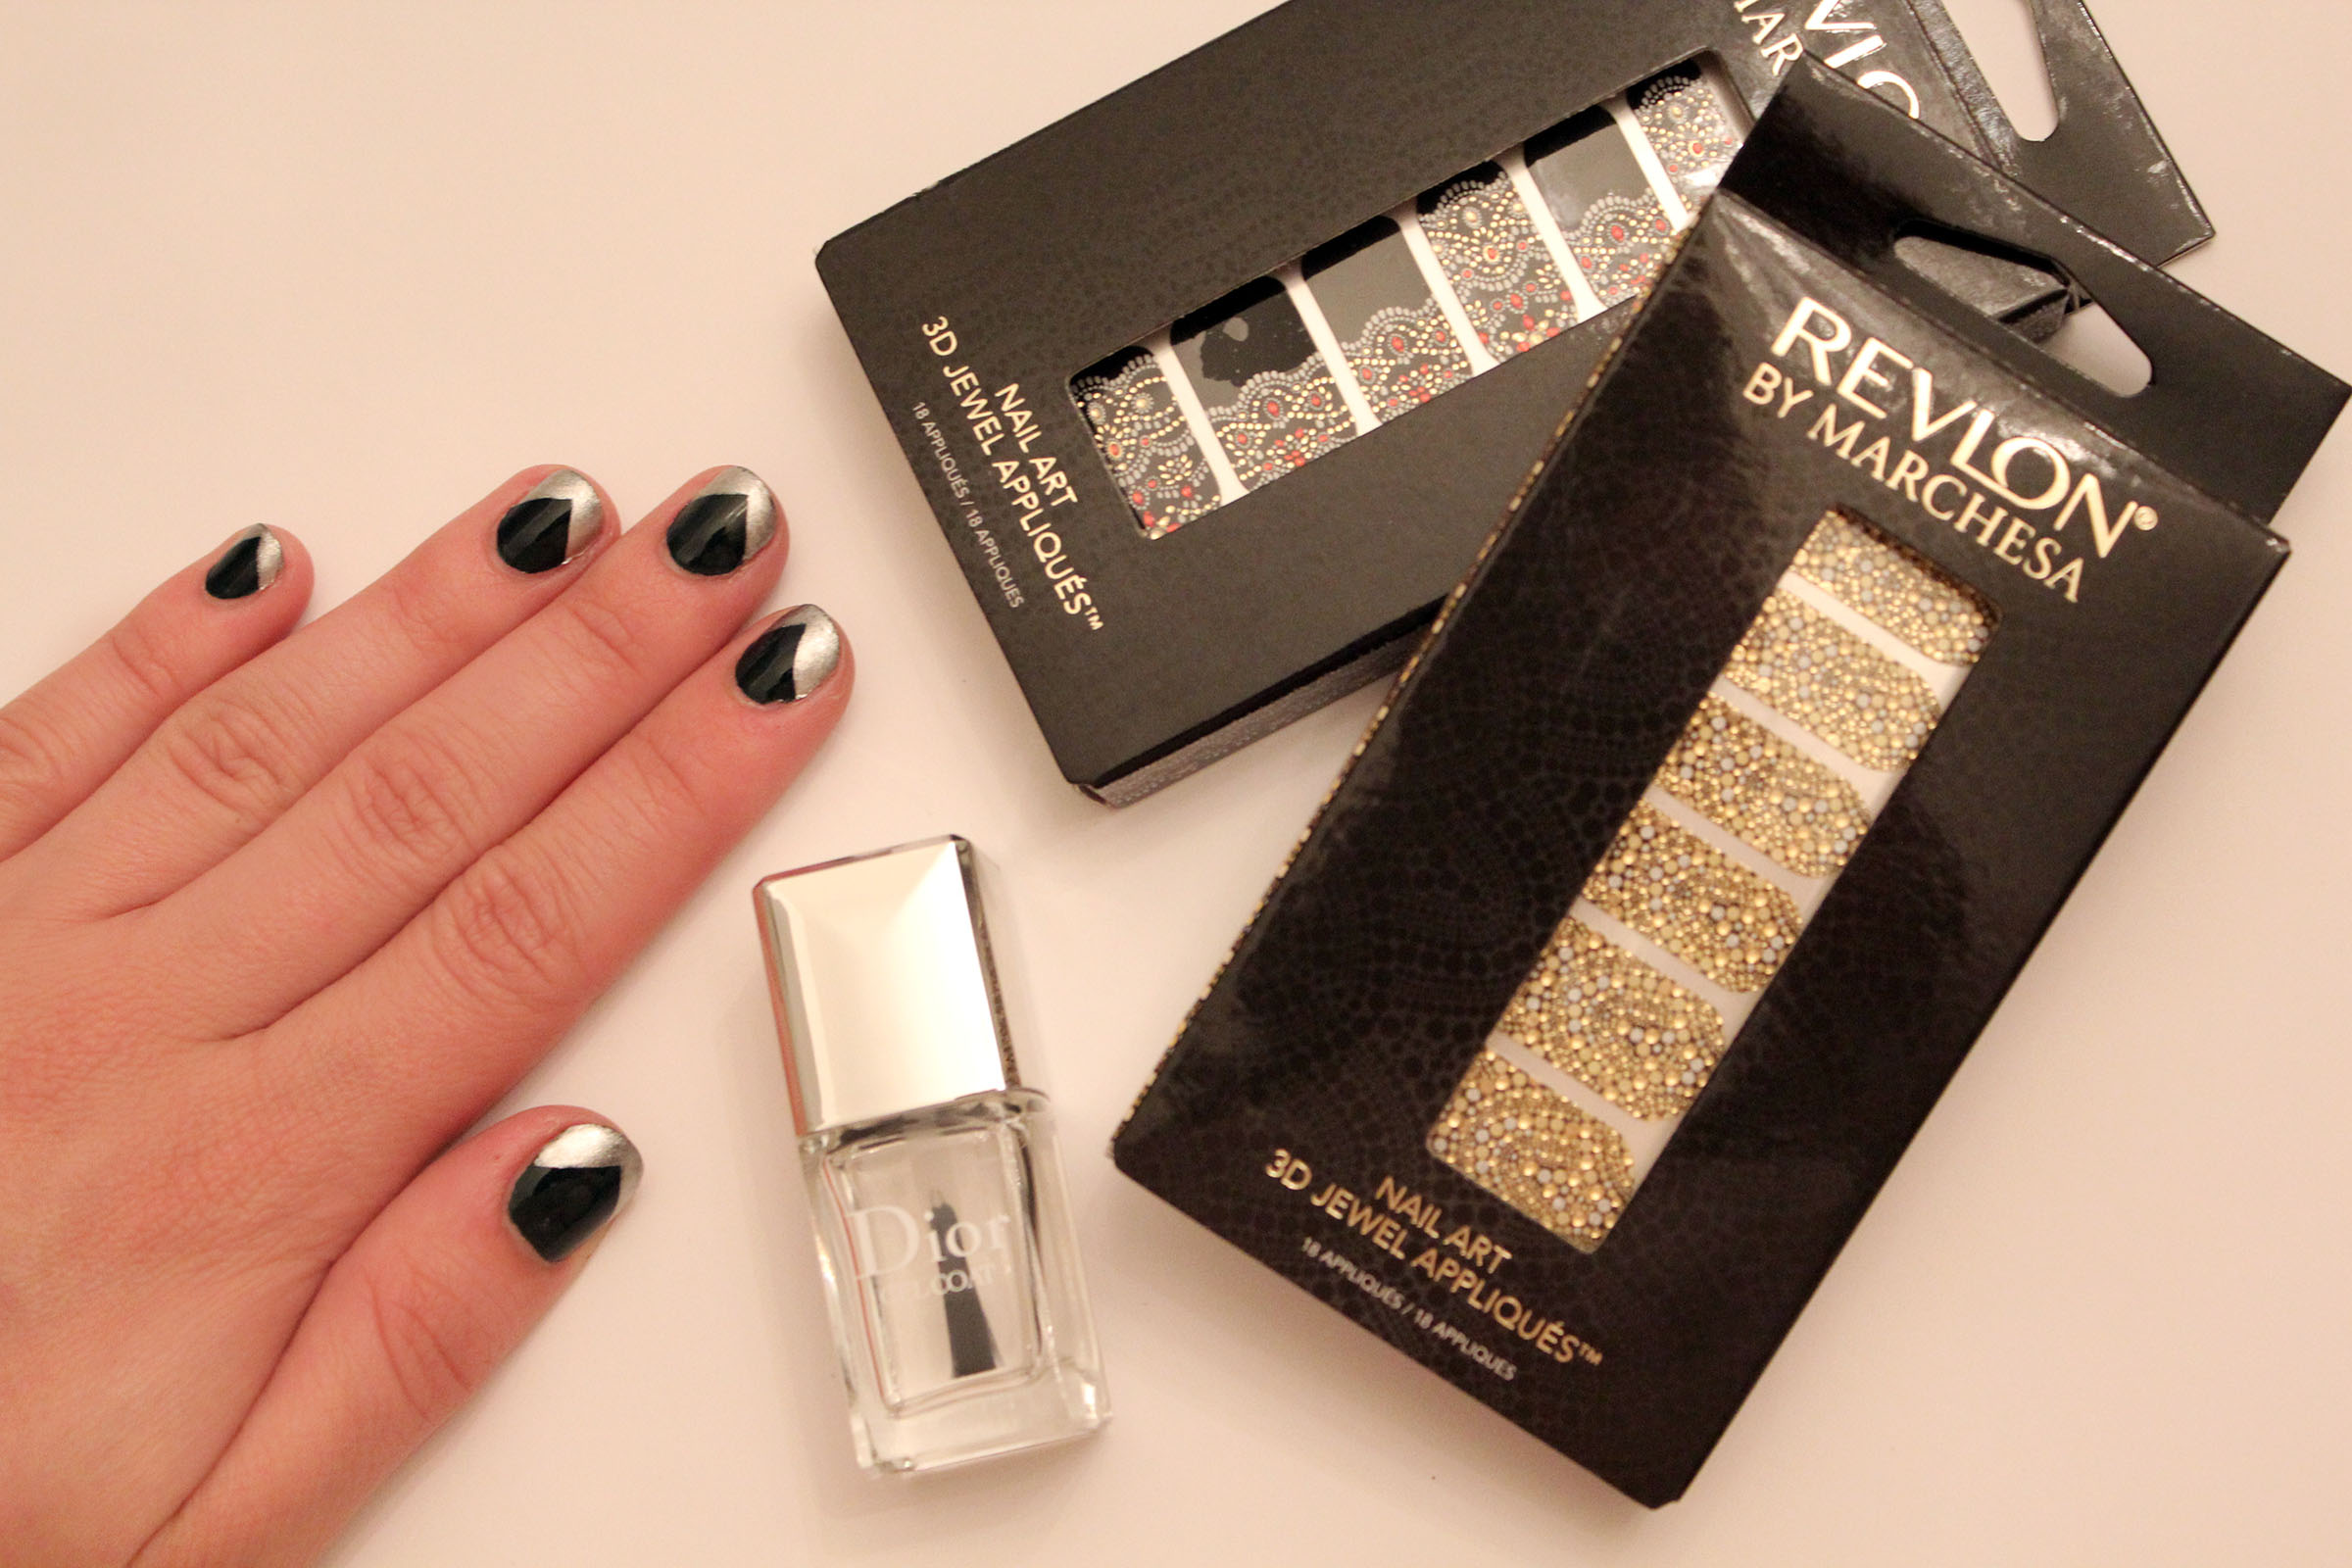 Revlon Marchesa nails